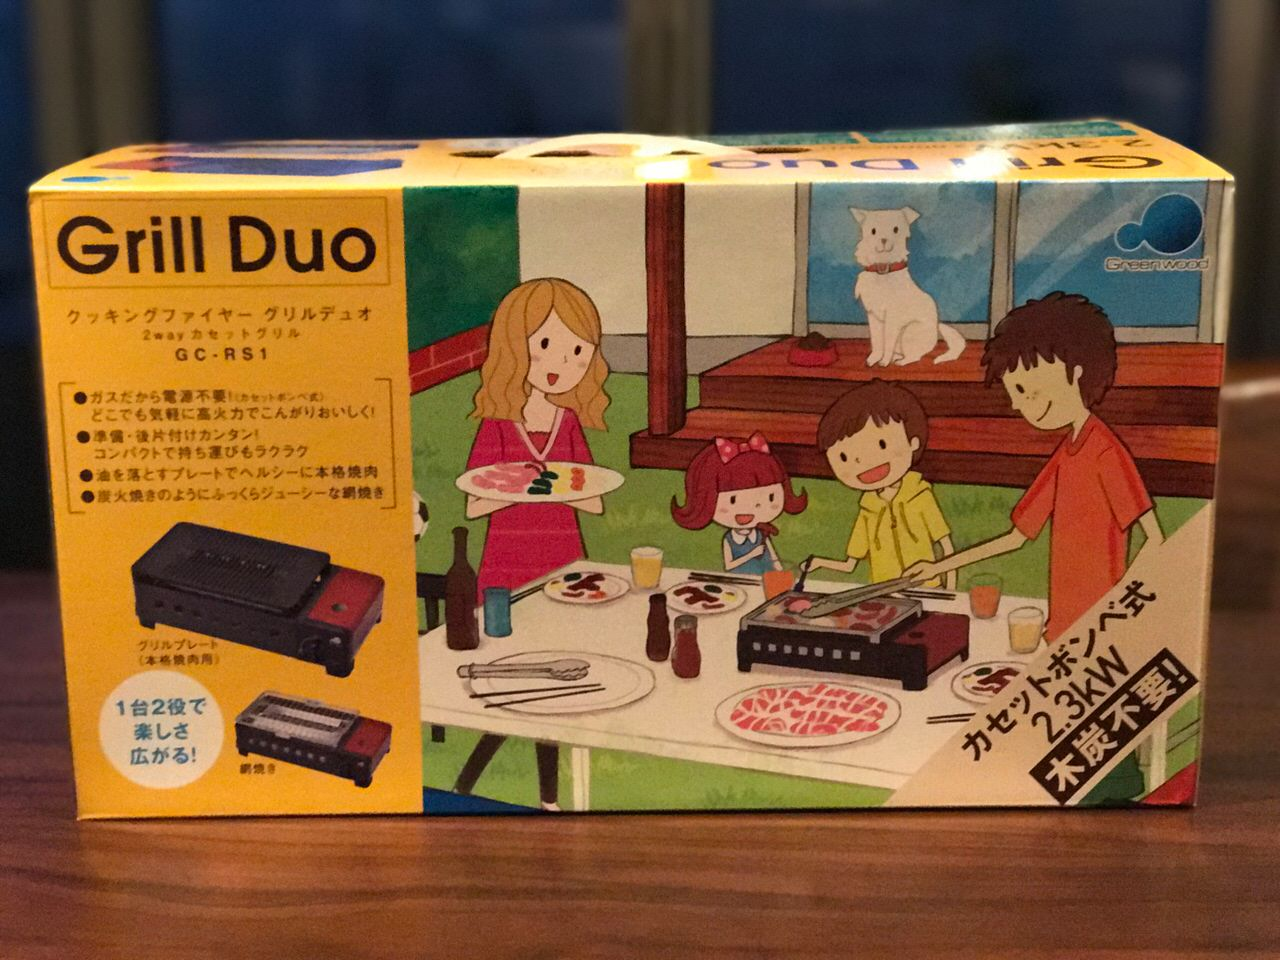 Grill duo 5119